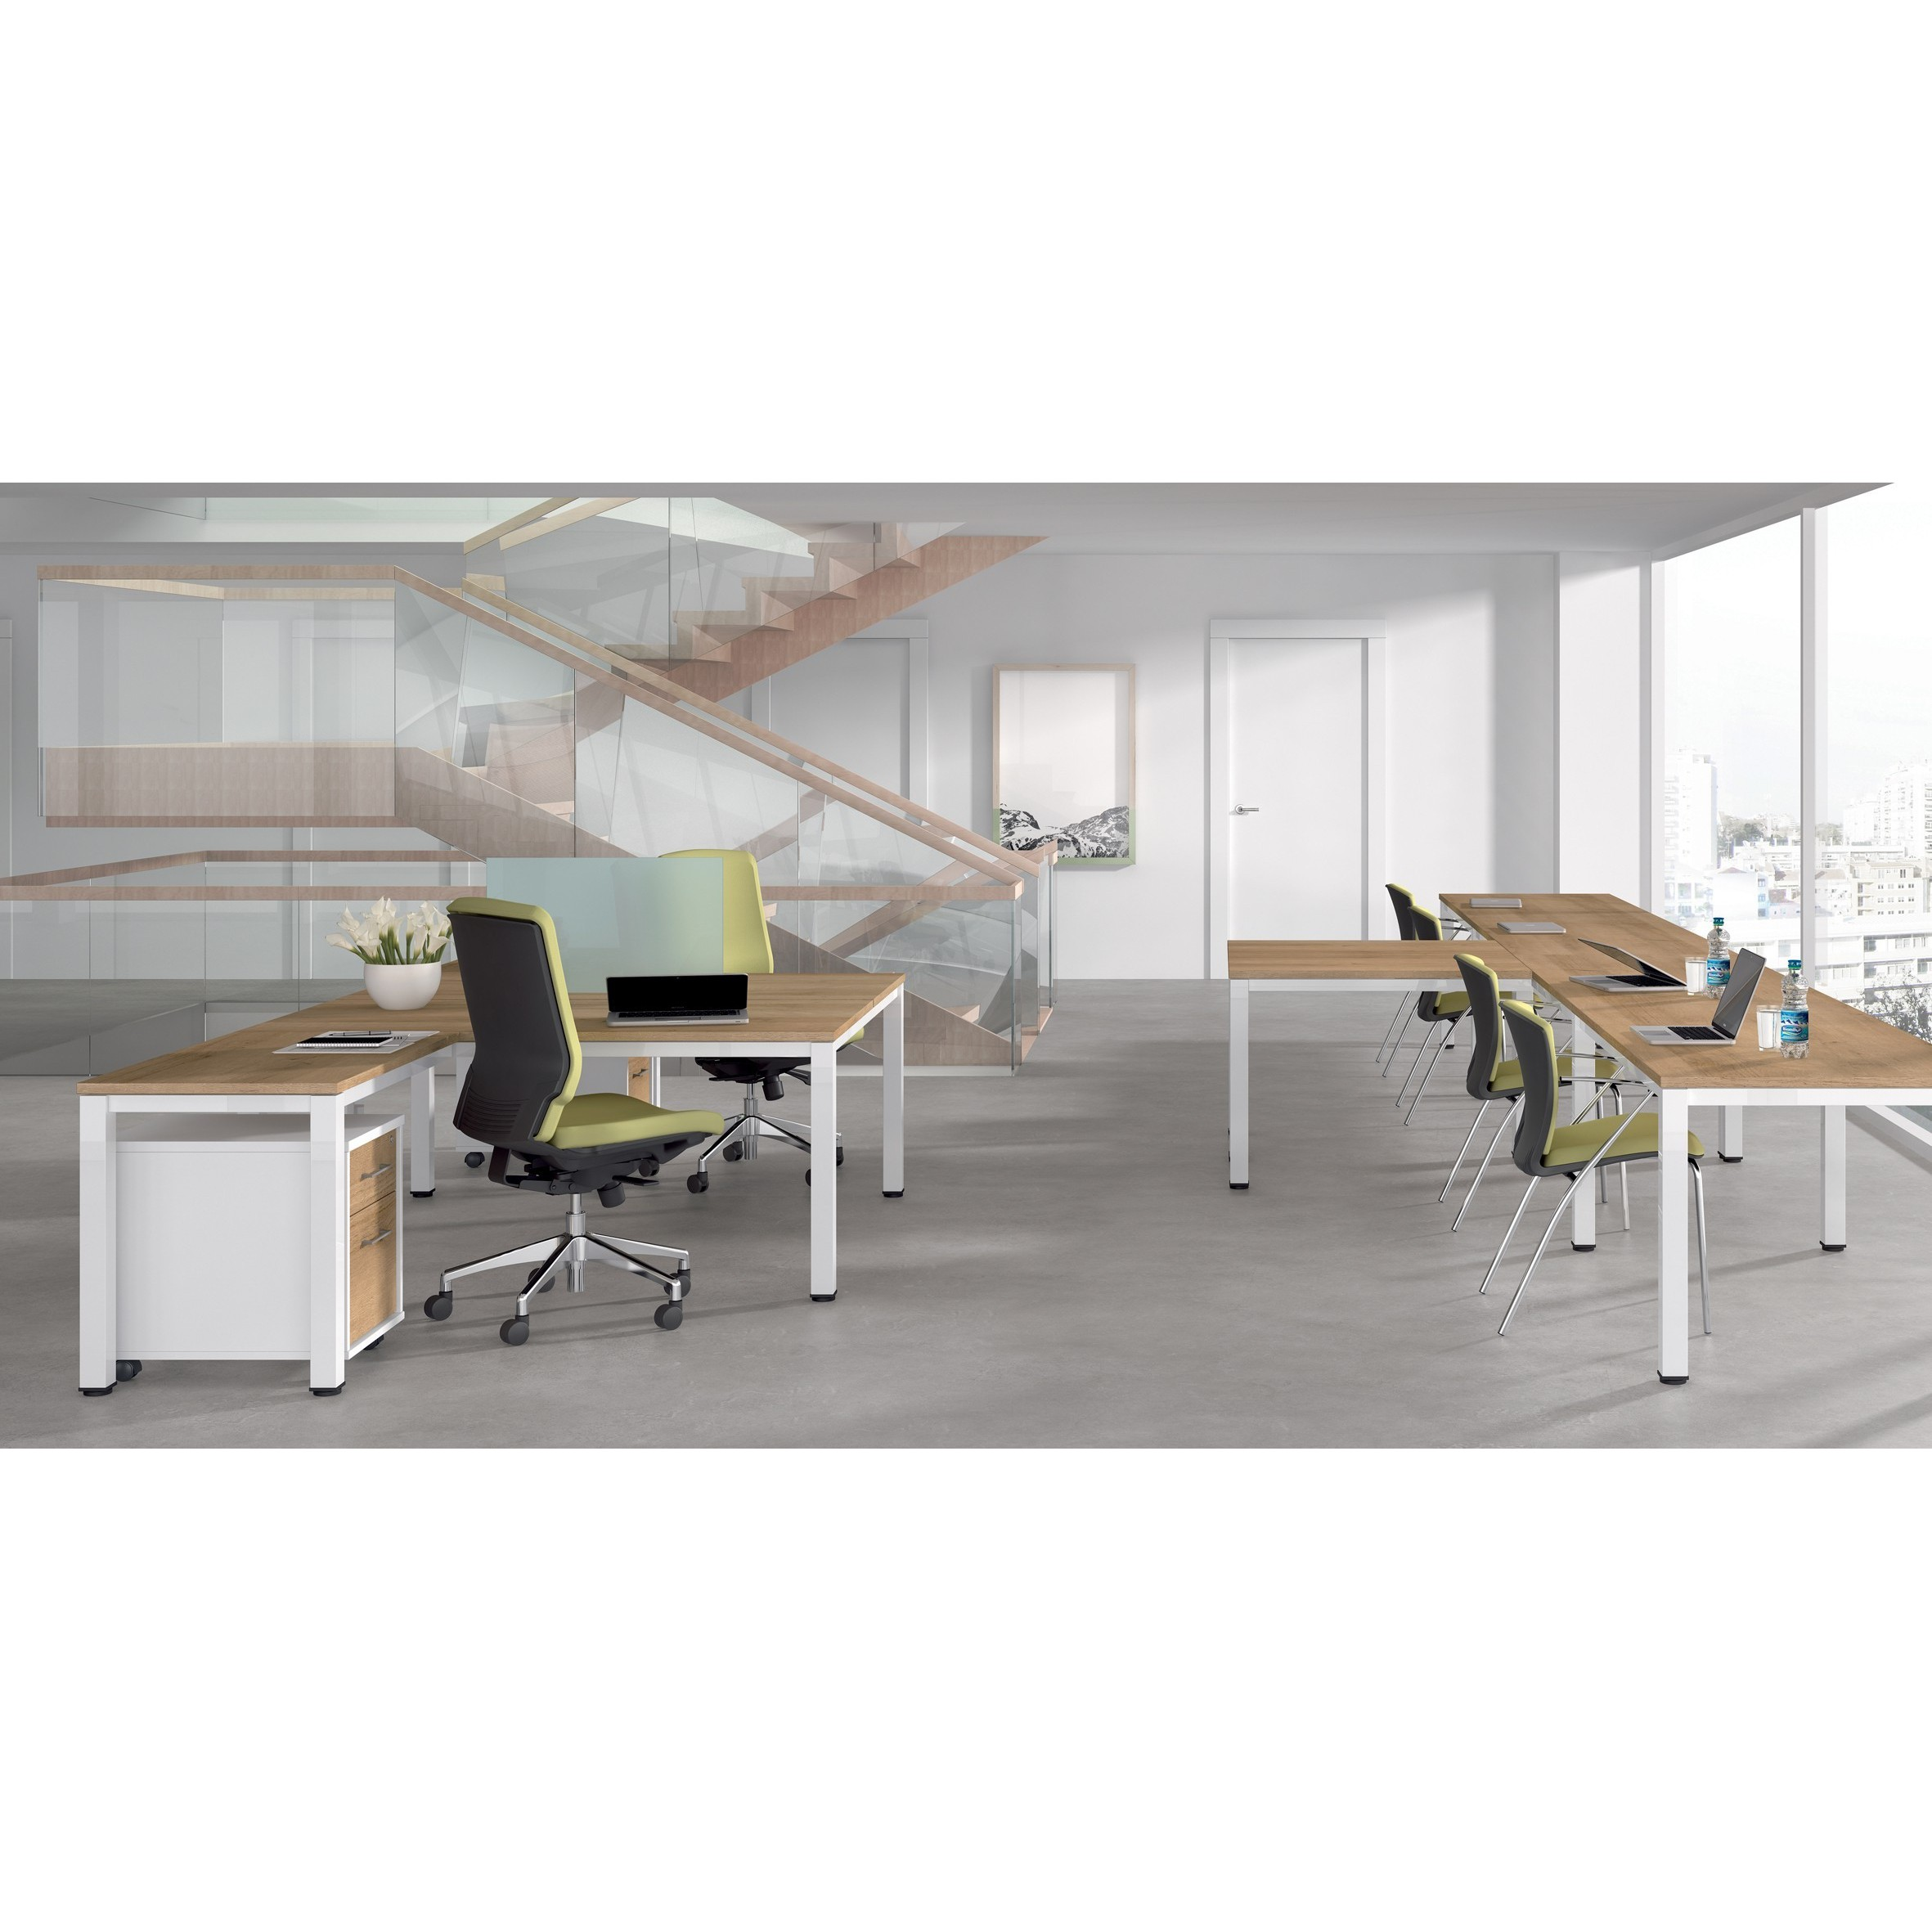 TABLE OFFICE 'S EXECUTIVE SERIES 140X80 WHITE/WHITE